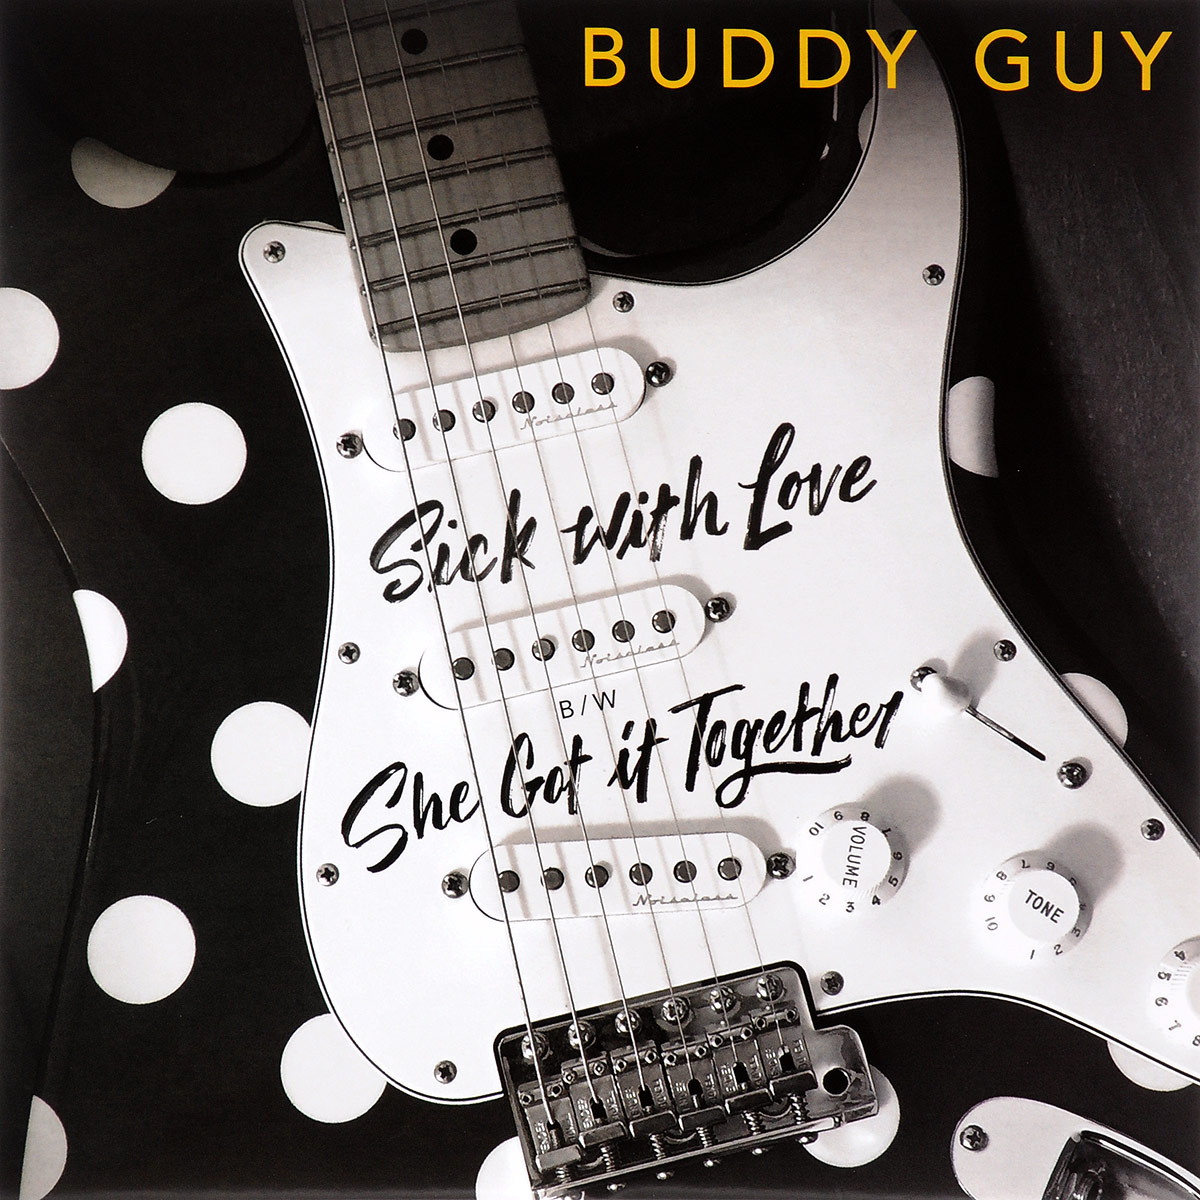 Бадди Гай Buddy Guy. Sick With Love (LP) бадди гай отис раш айк тернер ли джексон шеки джейк вилли диксон buddy guy otis rush ike turner cobra 2 cd